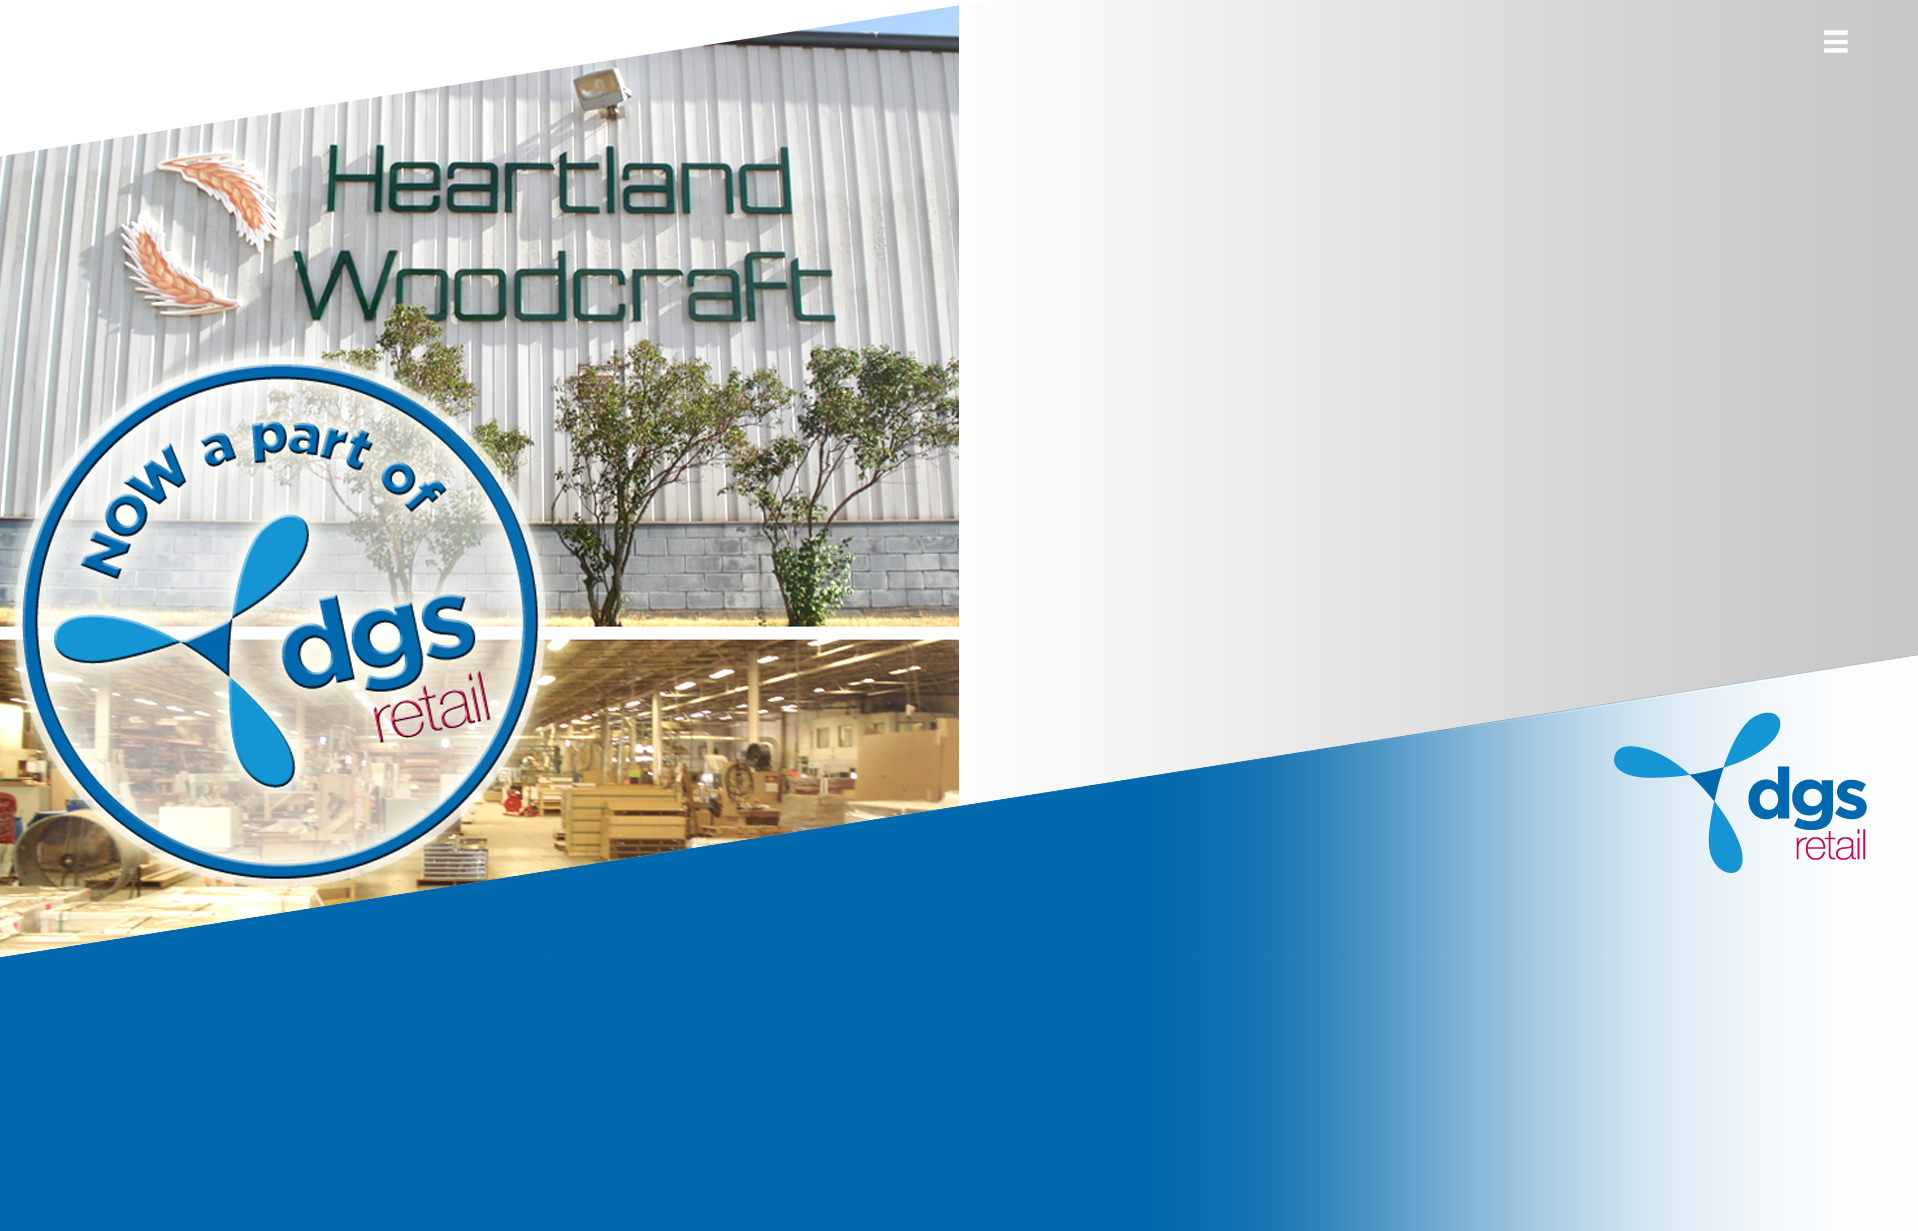 Heartland Woodcraft is now a part of DGS Retail